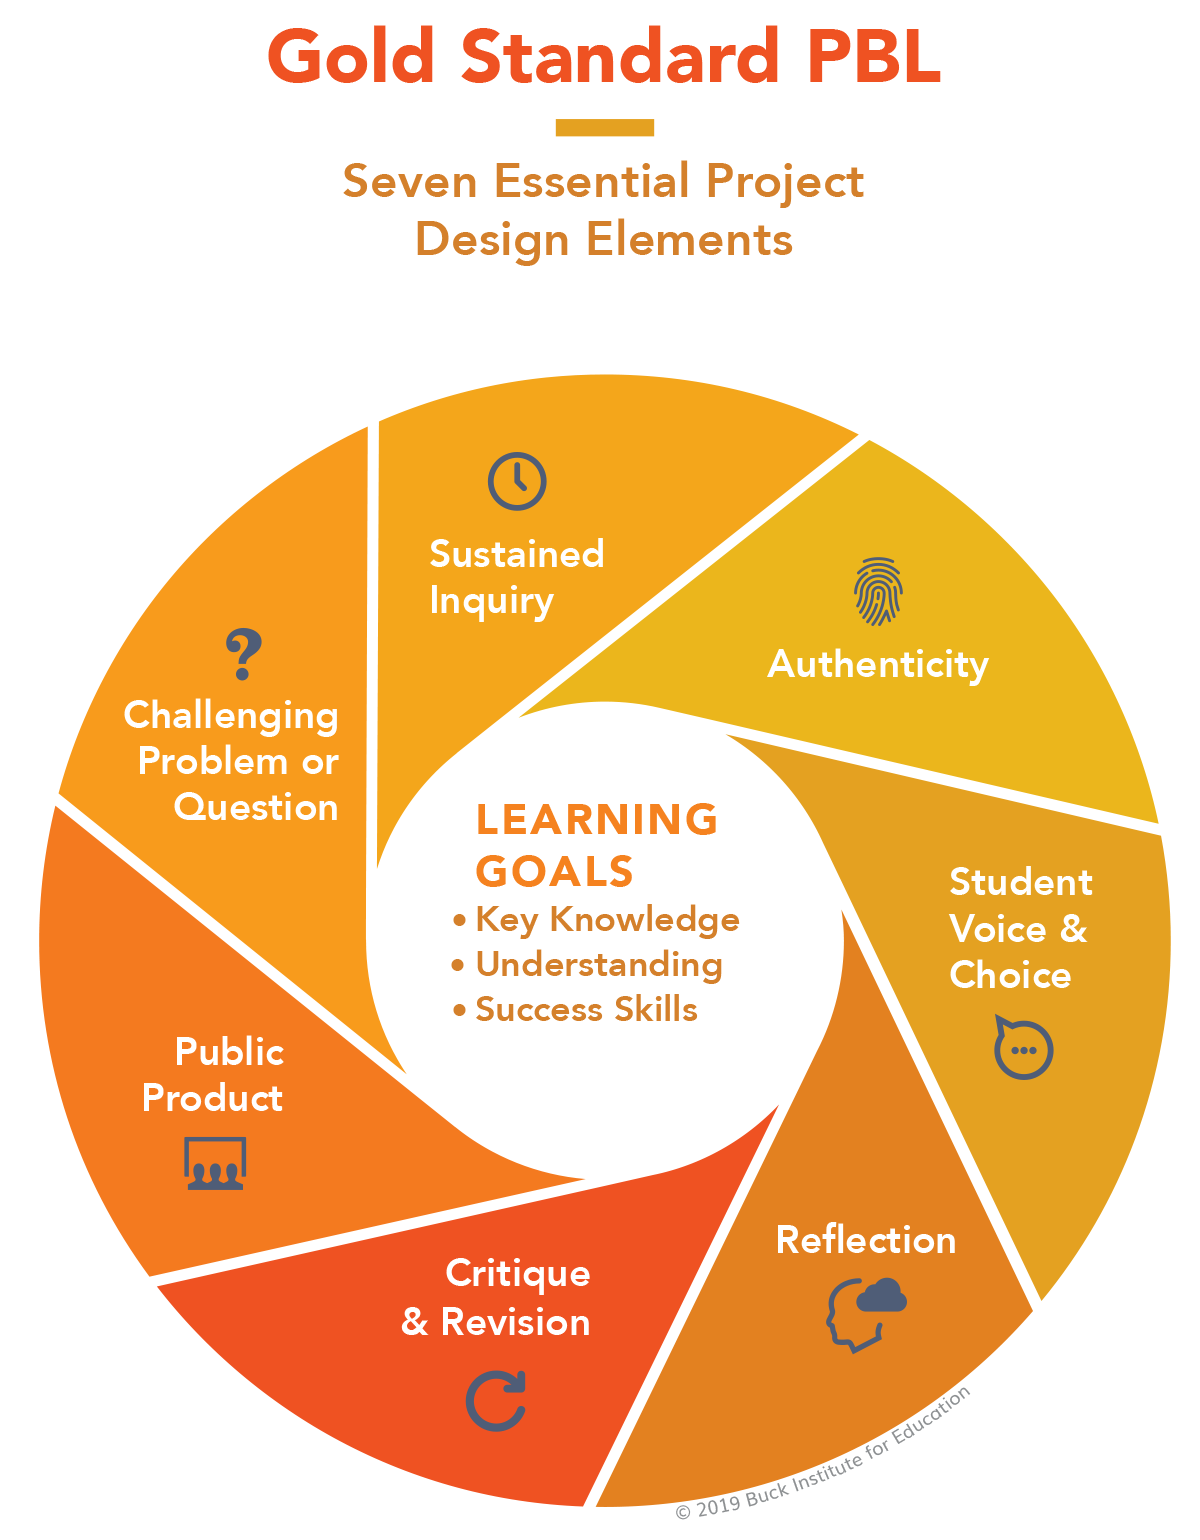 Gold Standard PBL. Seven Essential Project Design Elements. Wheel illustration has icons for each of the elements, as outlined below. At center of wheel is Learning Goals – Key Knowledge, Understanding, and Success Skills.